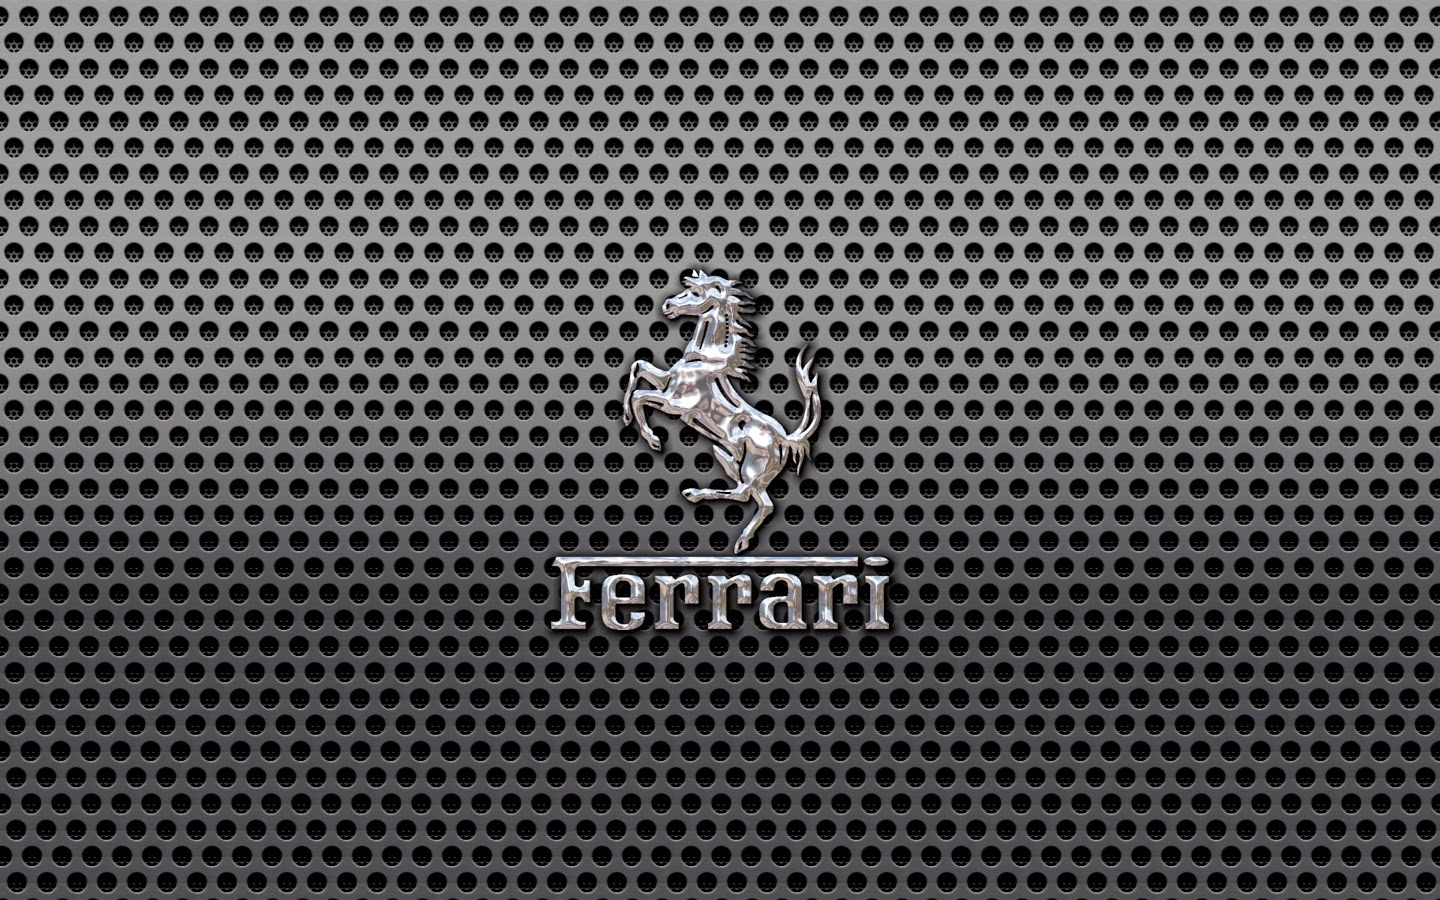 ferrari prancing horse dark metal hd widescreen wallpaper